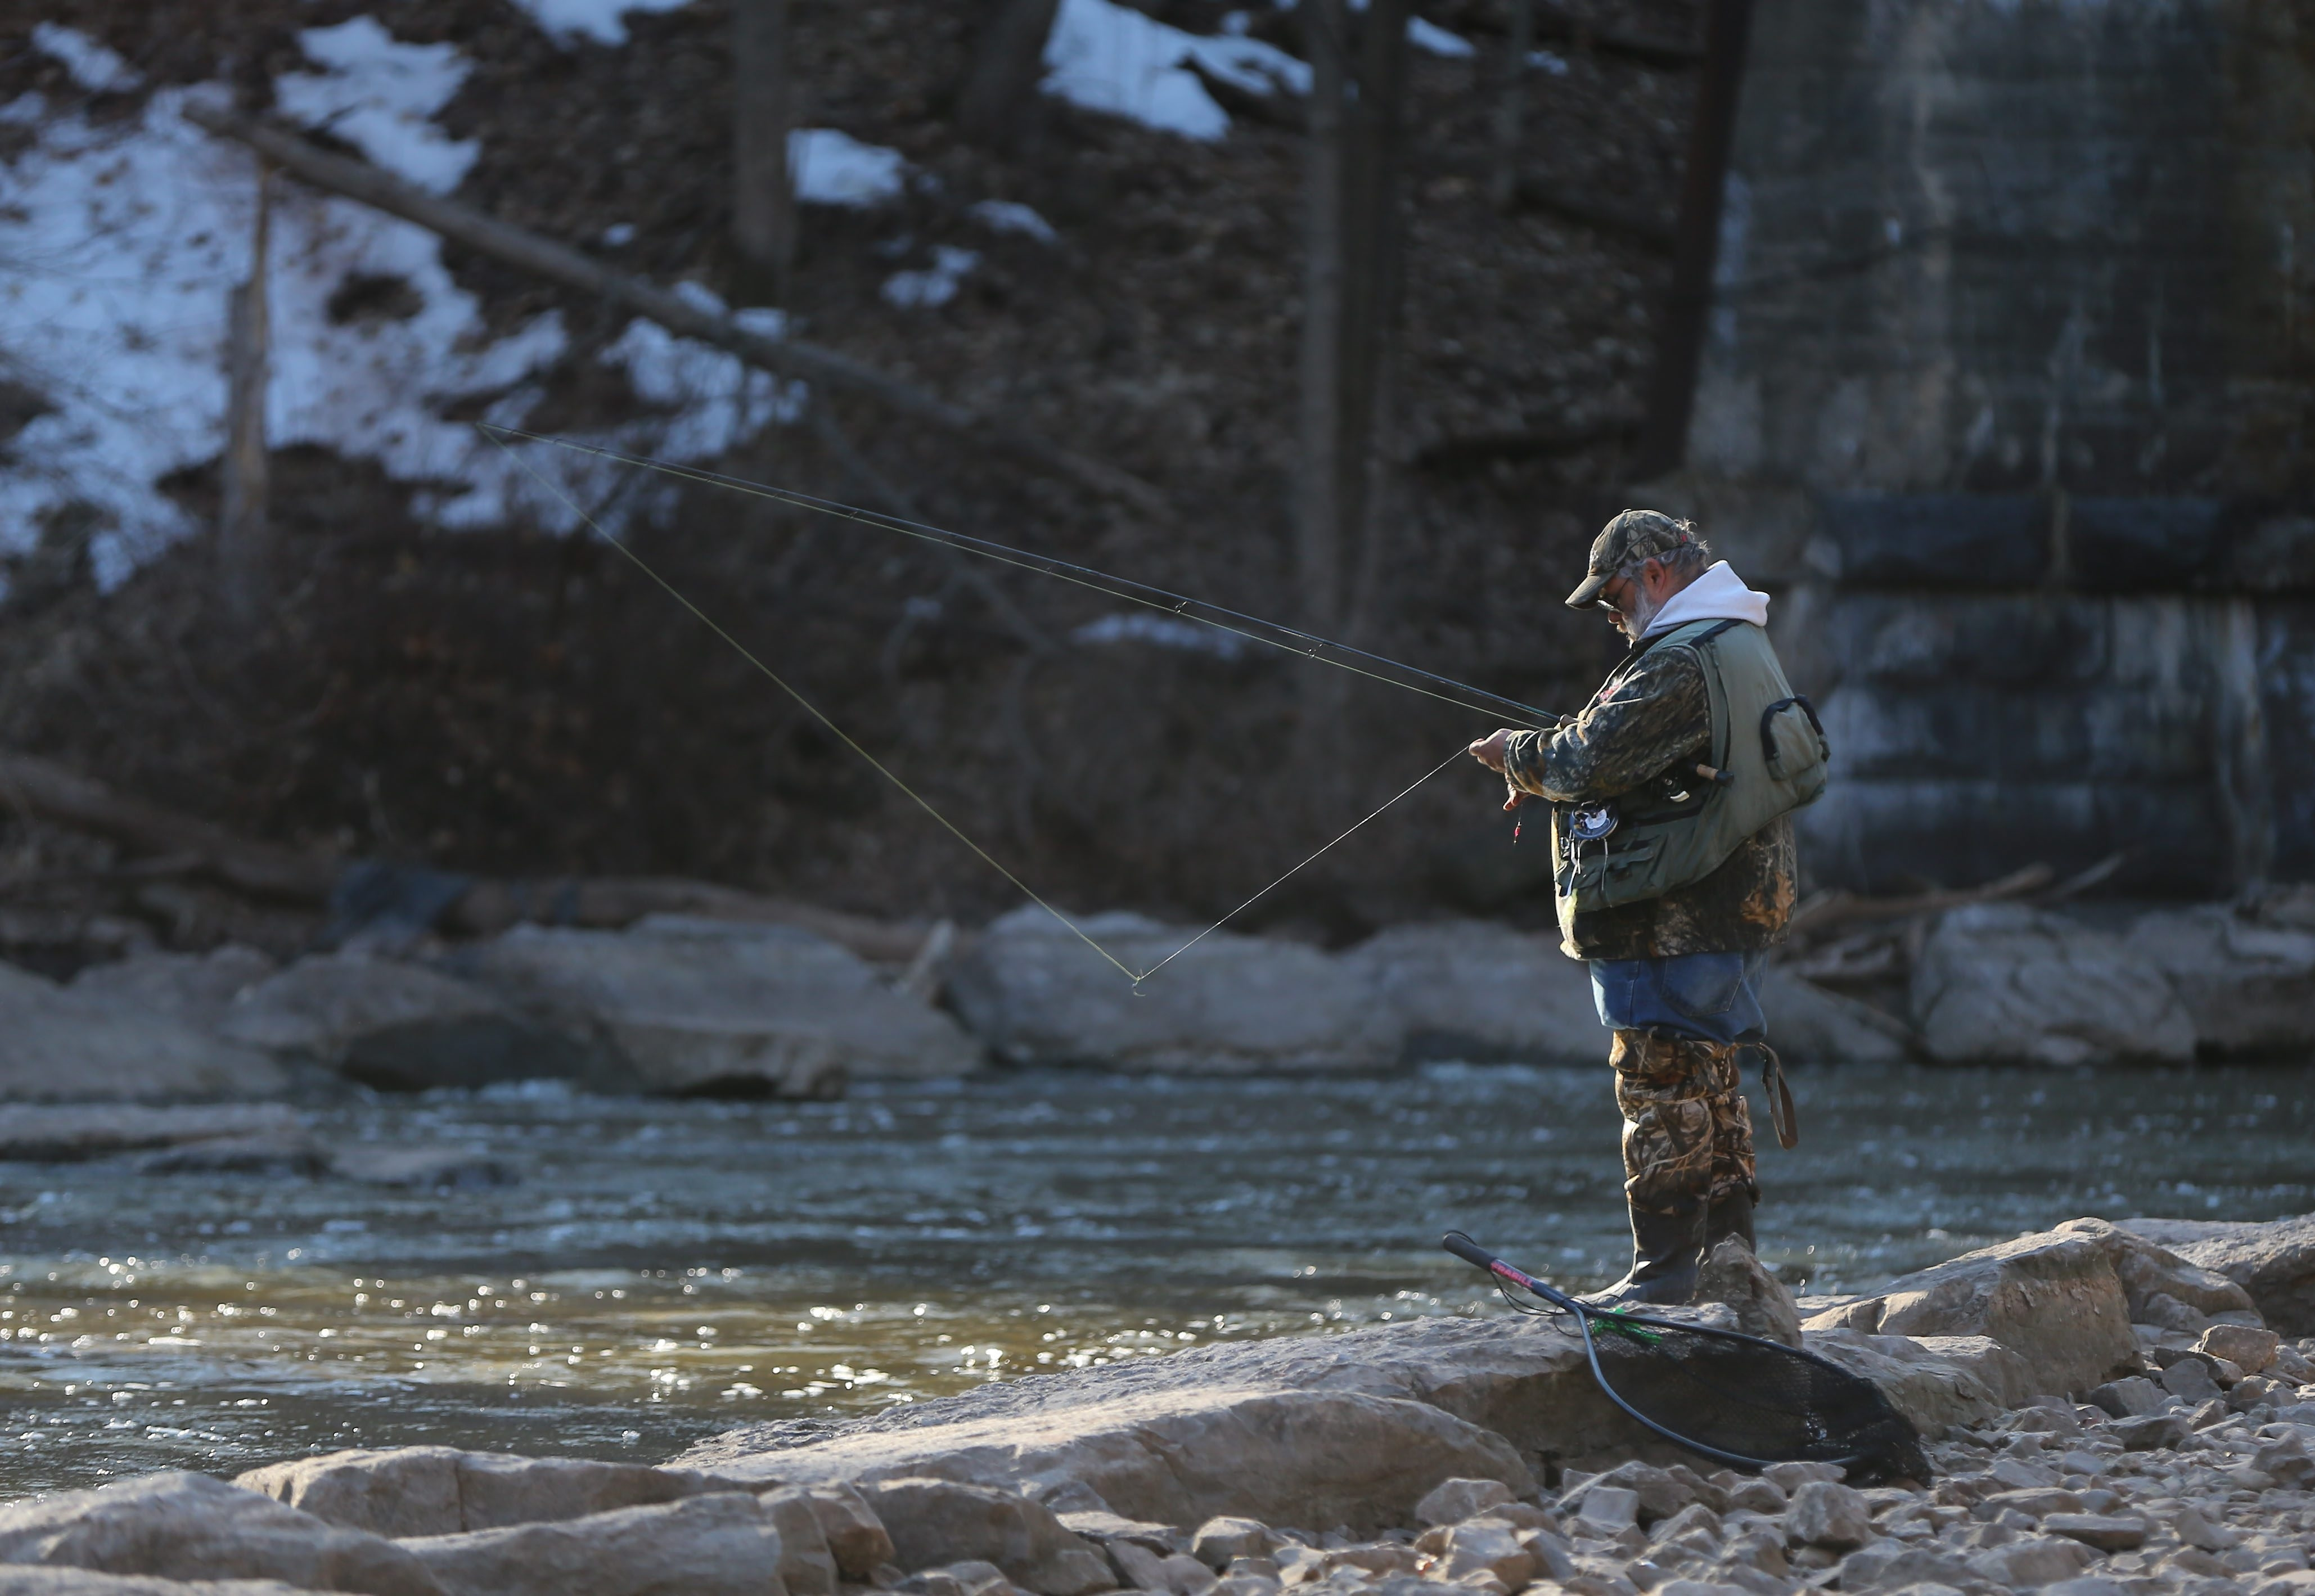 """Phil Brogan, of Ohio, casts his line at the Town of Newfane's Fisherman's Park. Officials say Olcott was named the """"Ultimate Fishing Town"""" in 2012 by the World Fishing Network."""